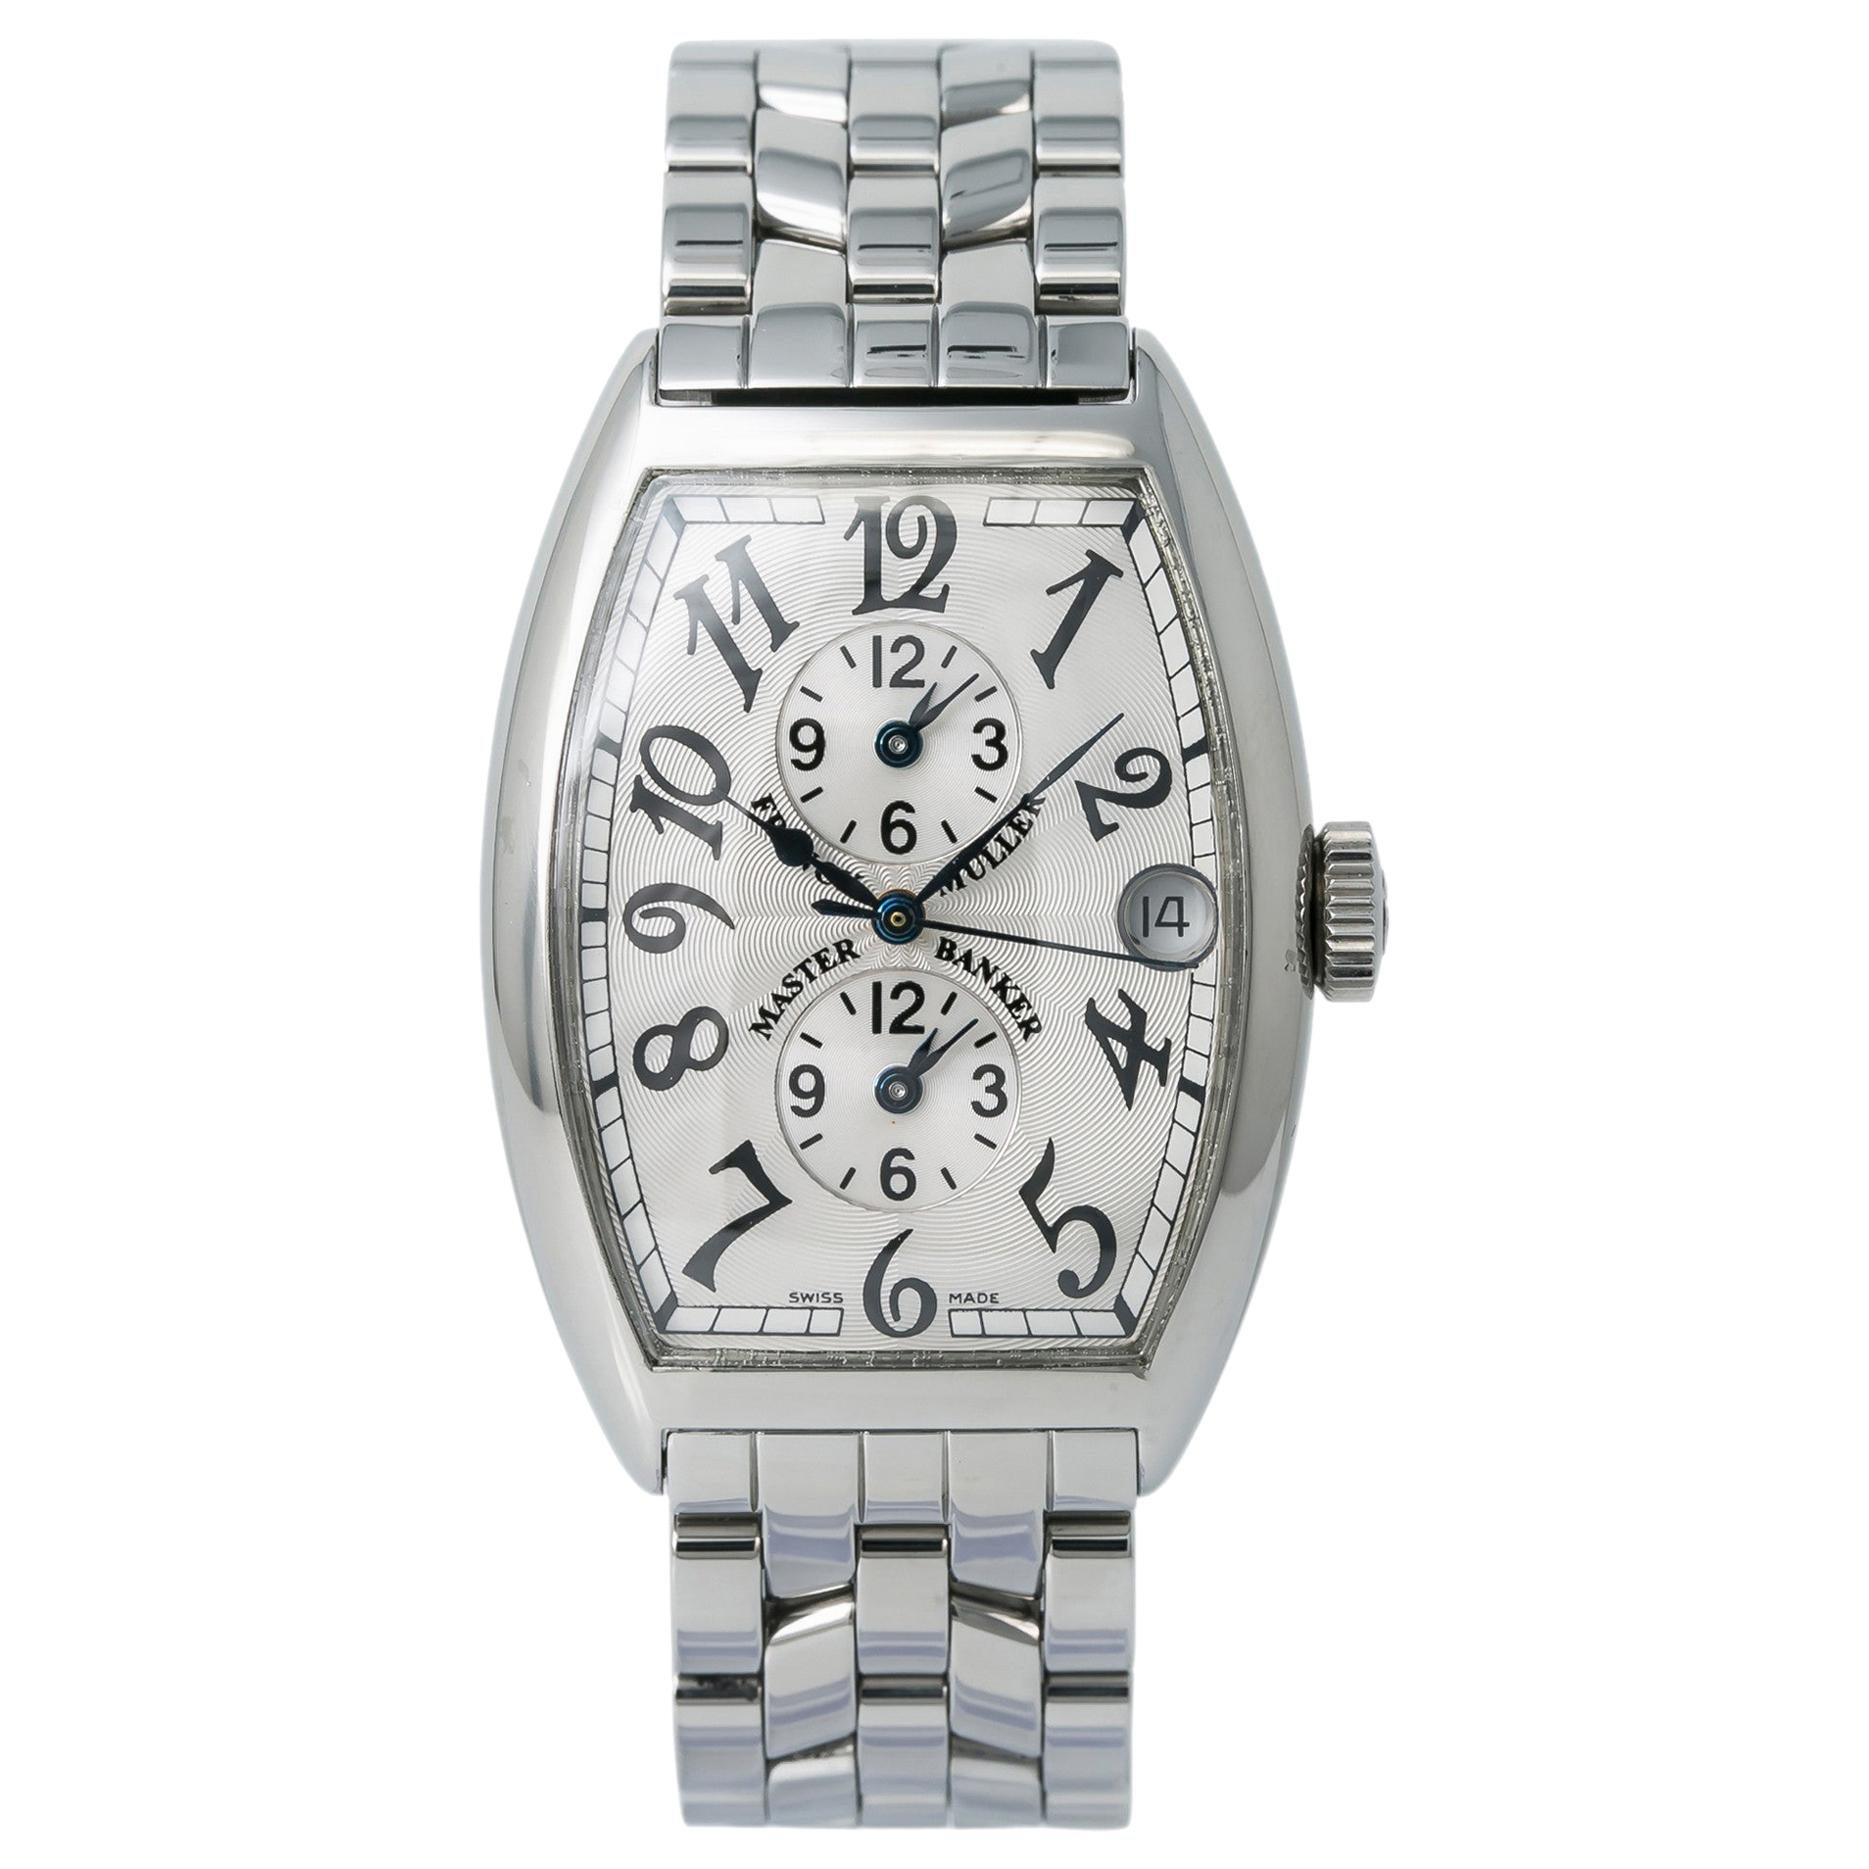 Franck Muller Master Banker 5850 Men's Automatic Watch Stainless Steel